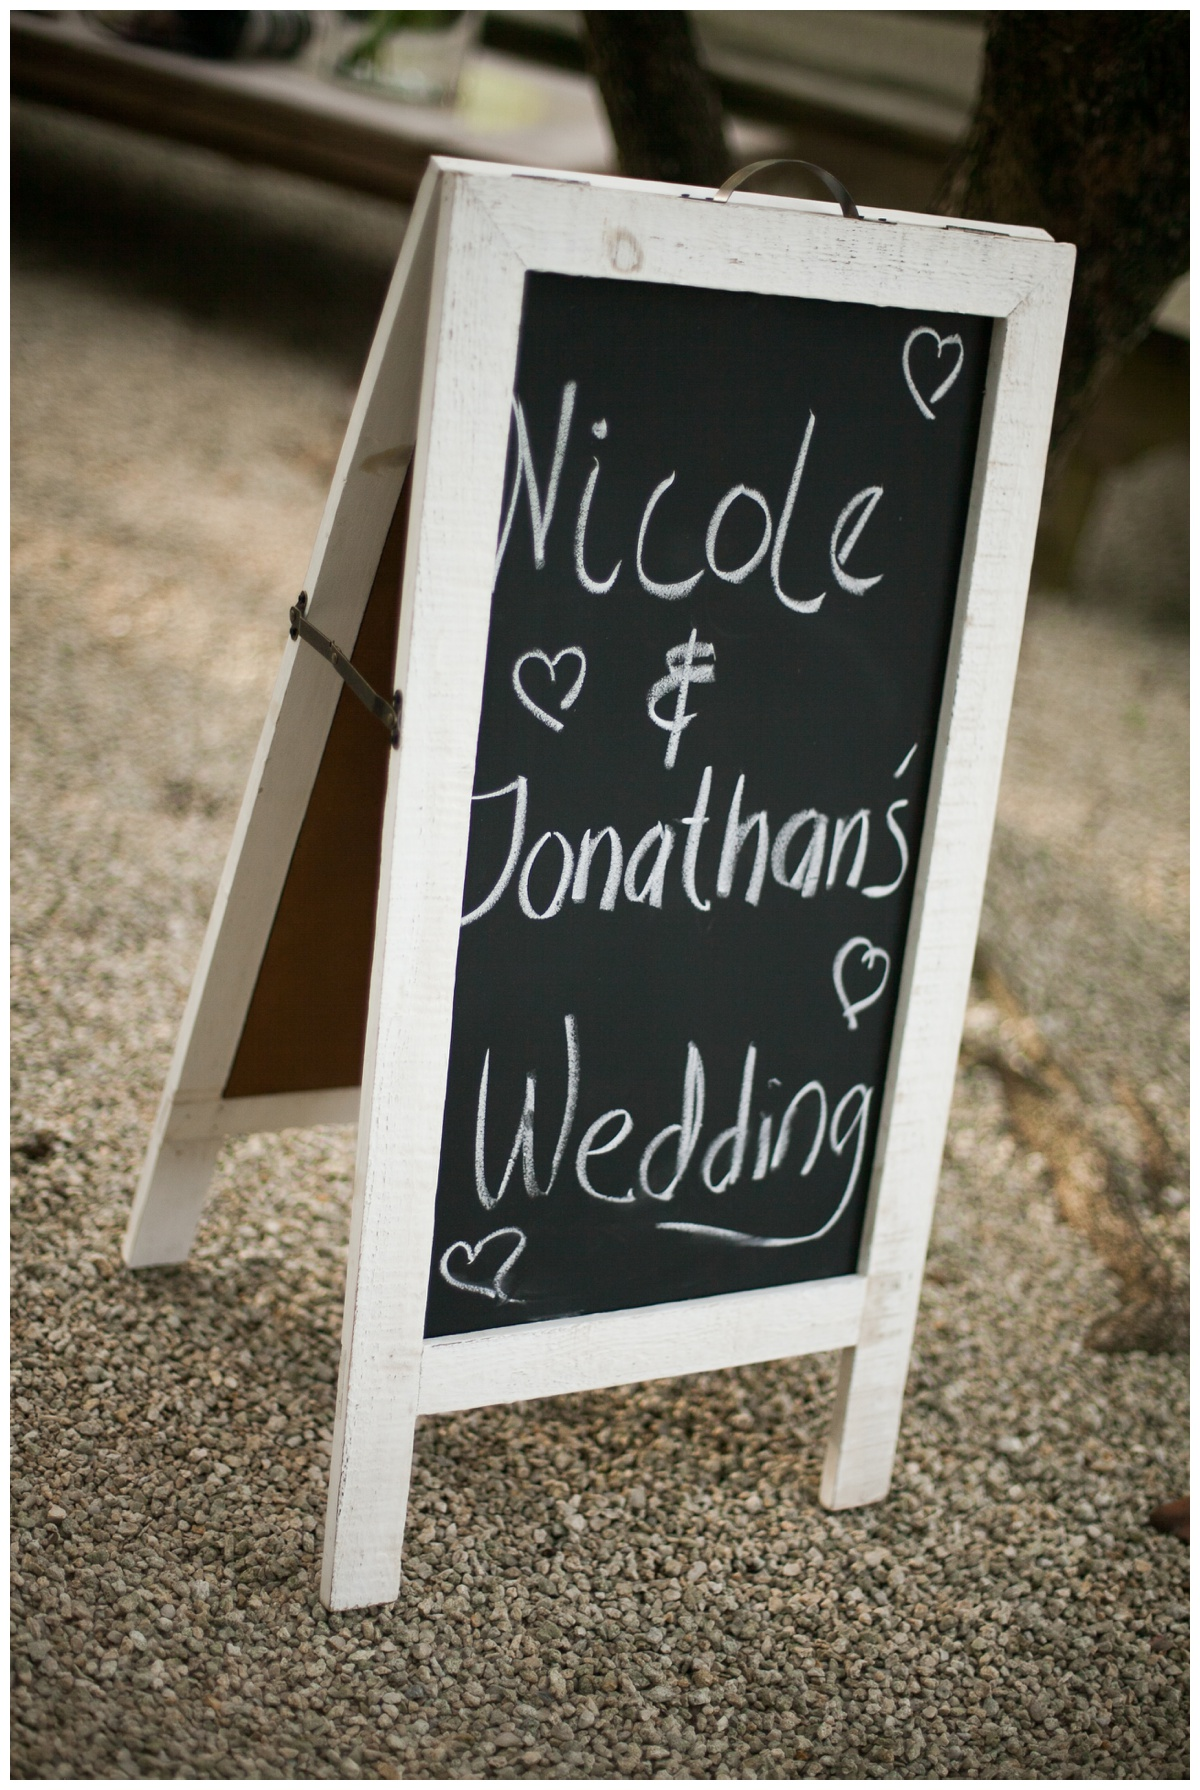 2017_07_22 Nicole & Jonathan WEDDING (7 of 381).jpg